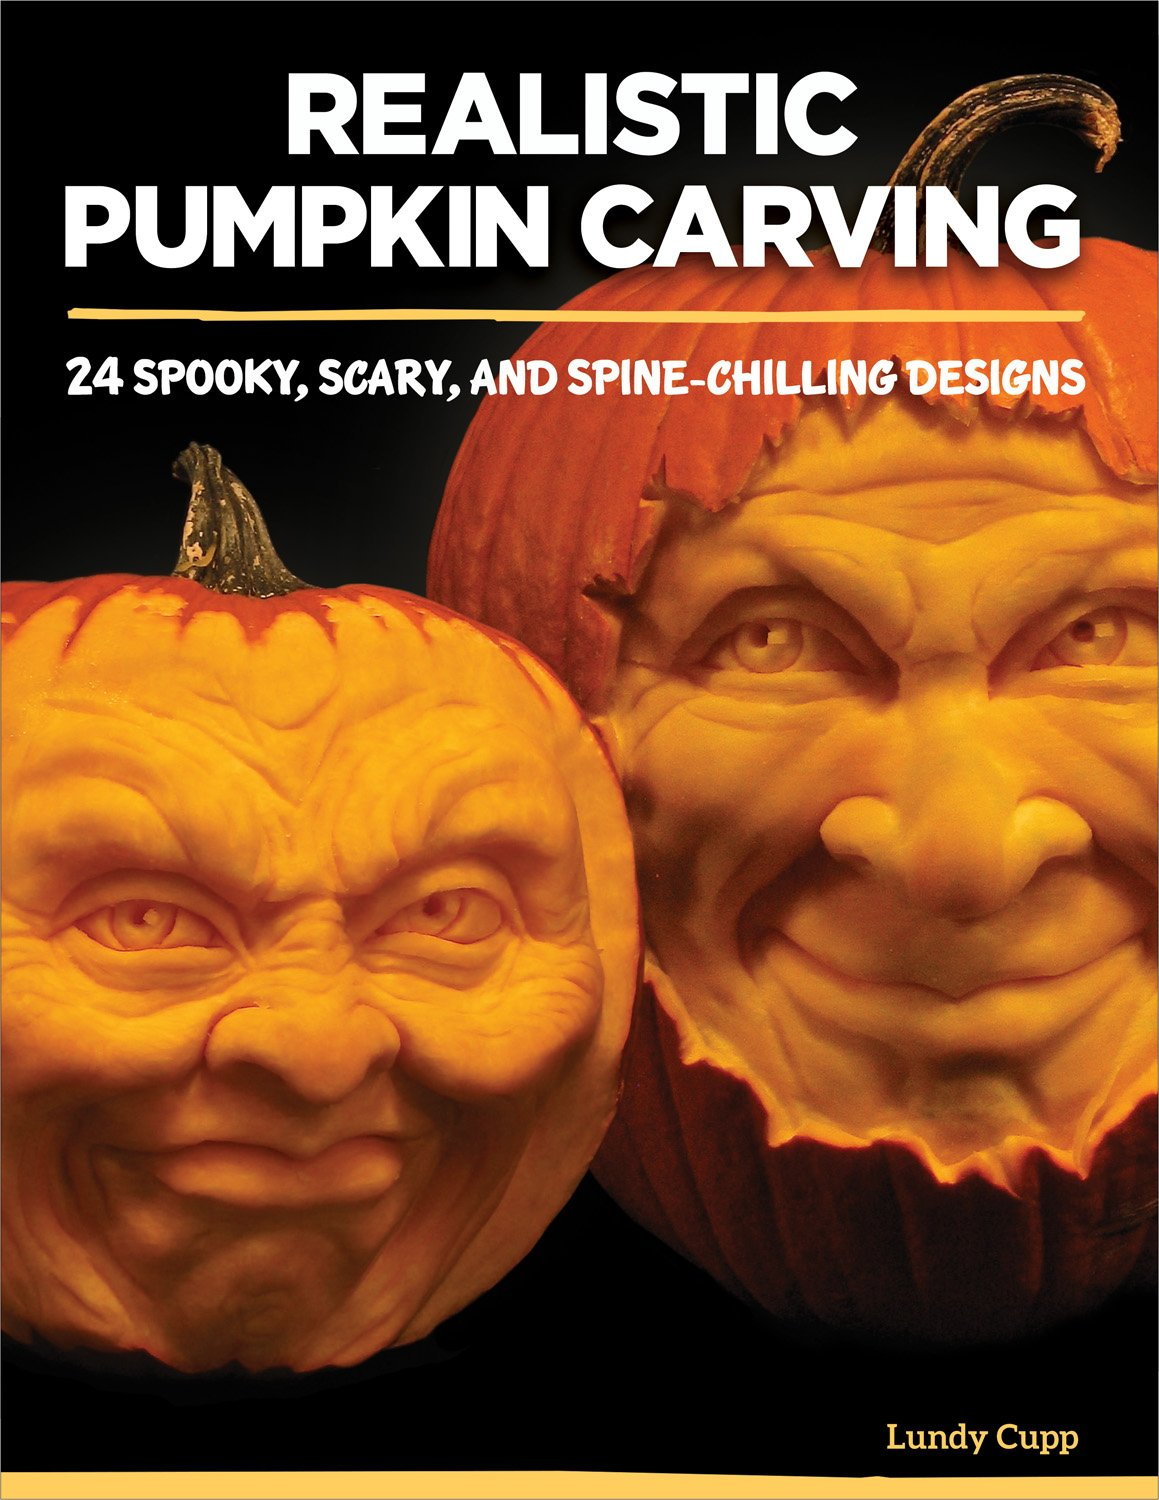 Realistic Pumpkin Carving 24 Spooky Scary And Spine Chilling Designs Fox Chapel Publishing Easy To Learn Techniques For Creating Expressive 3d Personalities In Pumpkins Gourds Squash And More Lundy Cupp 9781565238947 Amazon Com Books